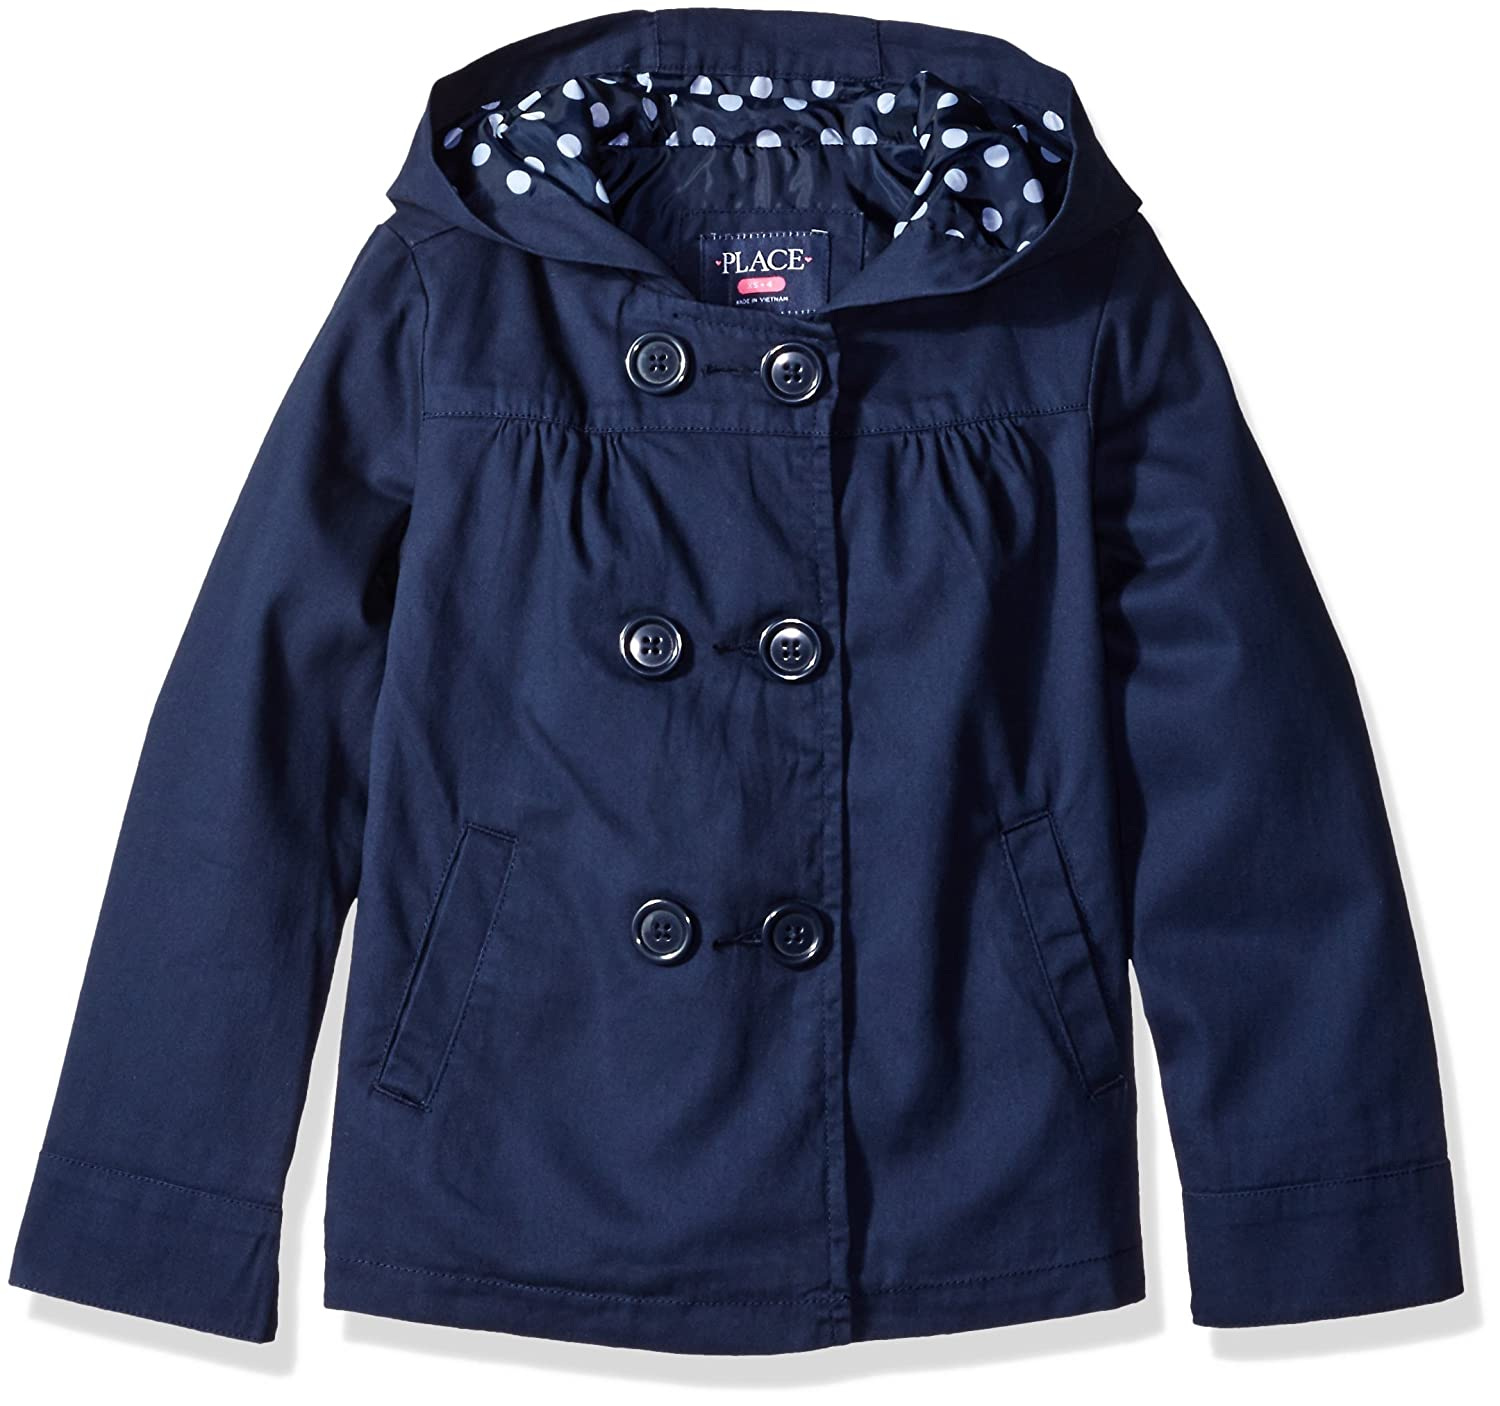 The Children's Place Girls' Uniform Trench Coat 2062559